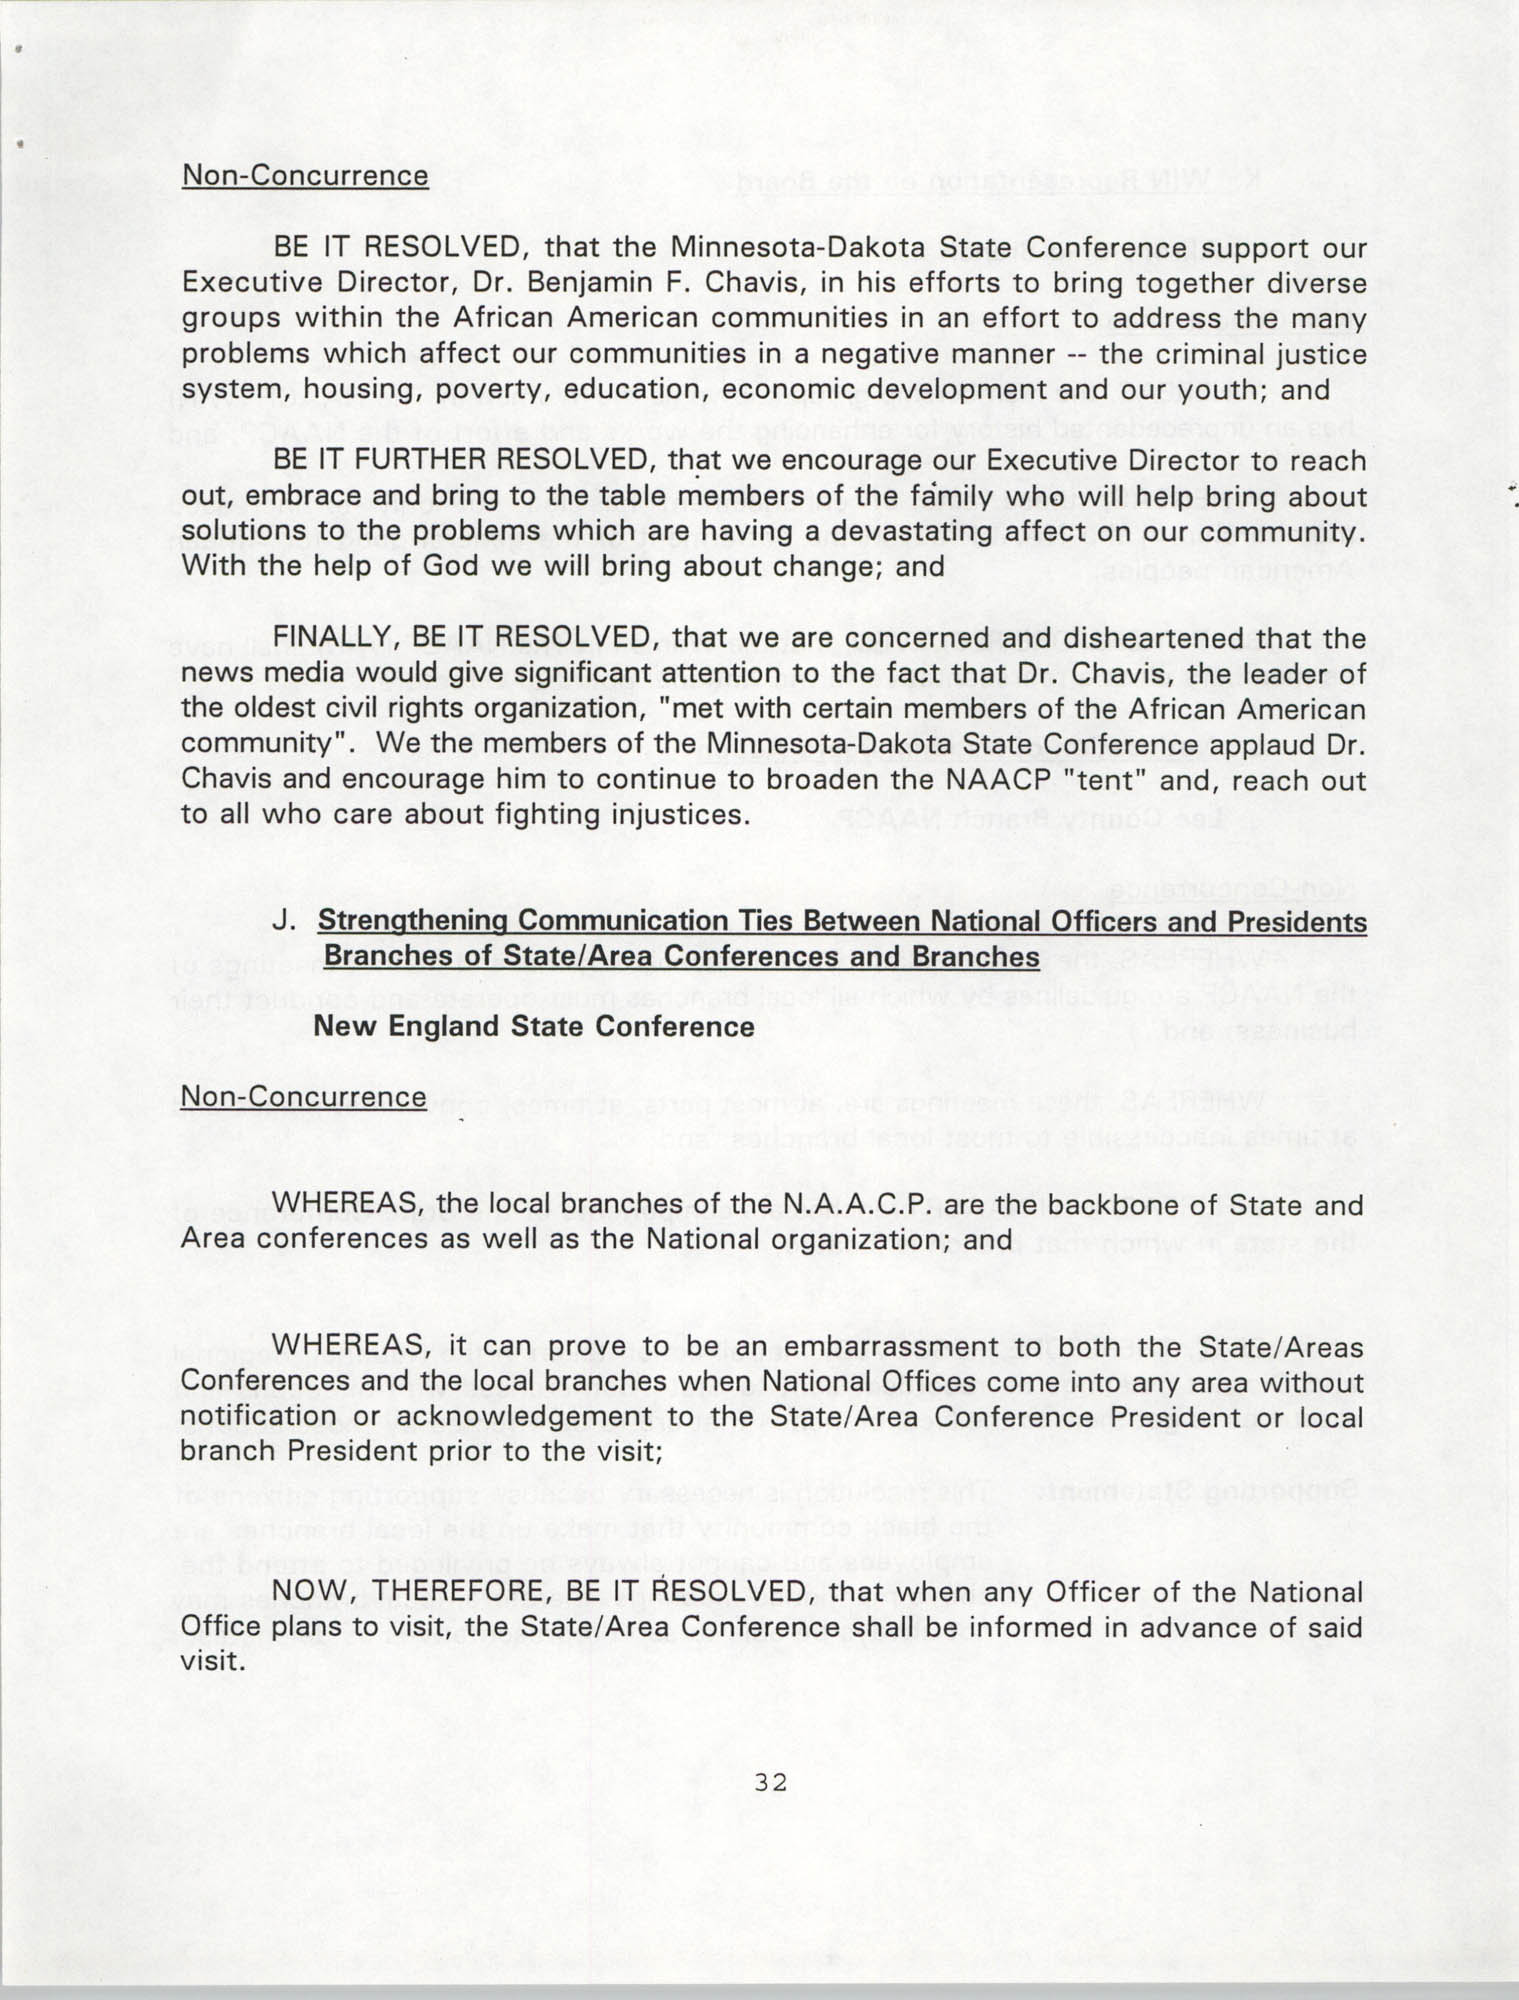 Resolutions Submitted Under Article X, Section 2 of the Constitution of the NAACP, 1994, Page 32